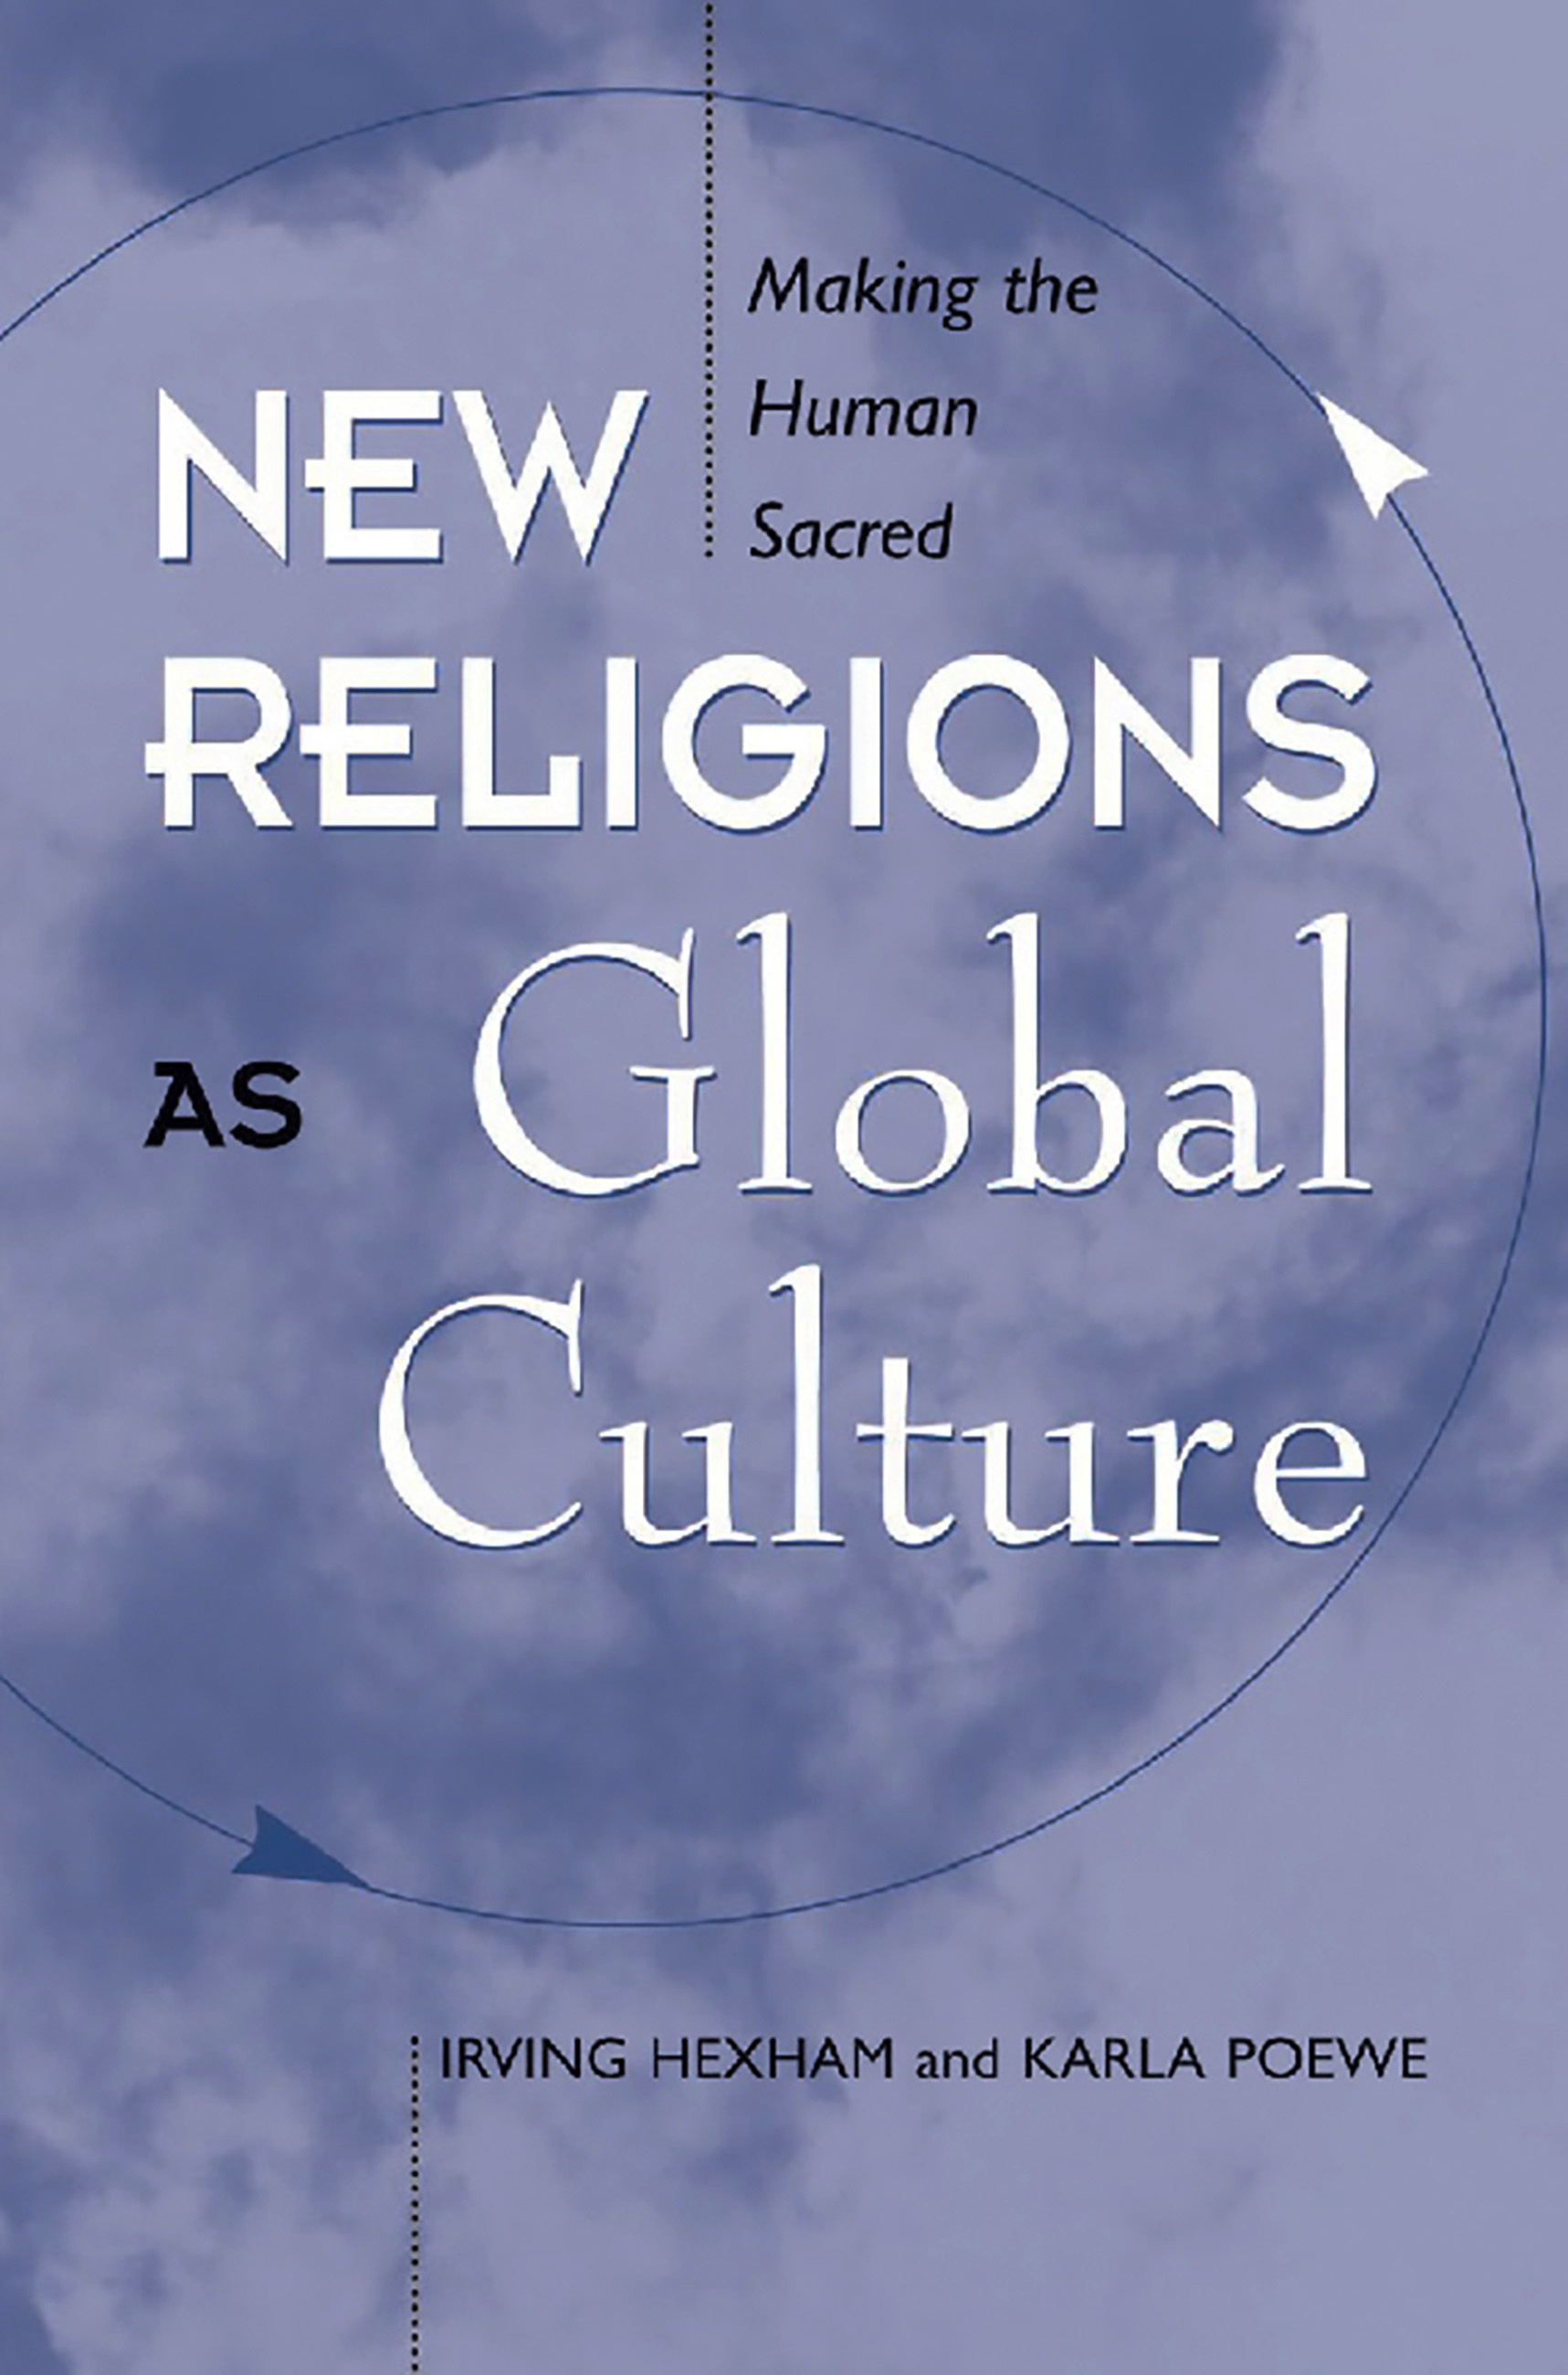 a discussion of transcendentalism as a new religion American gurus from transcendentalism to new age religion arthur versluis introduces new ways of understanding american religious history and contemporary american popular religion.